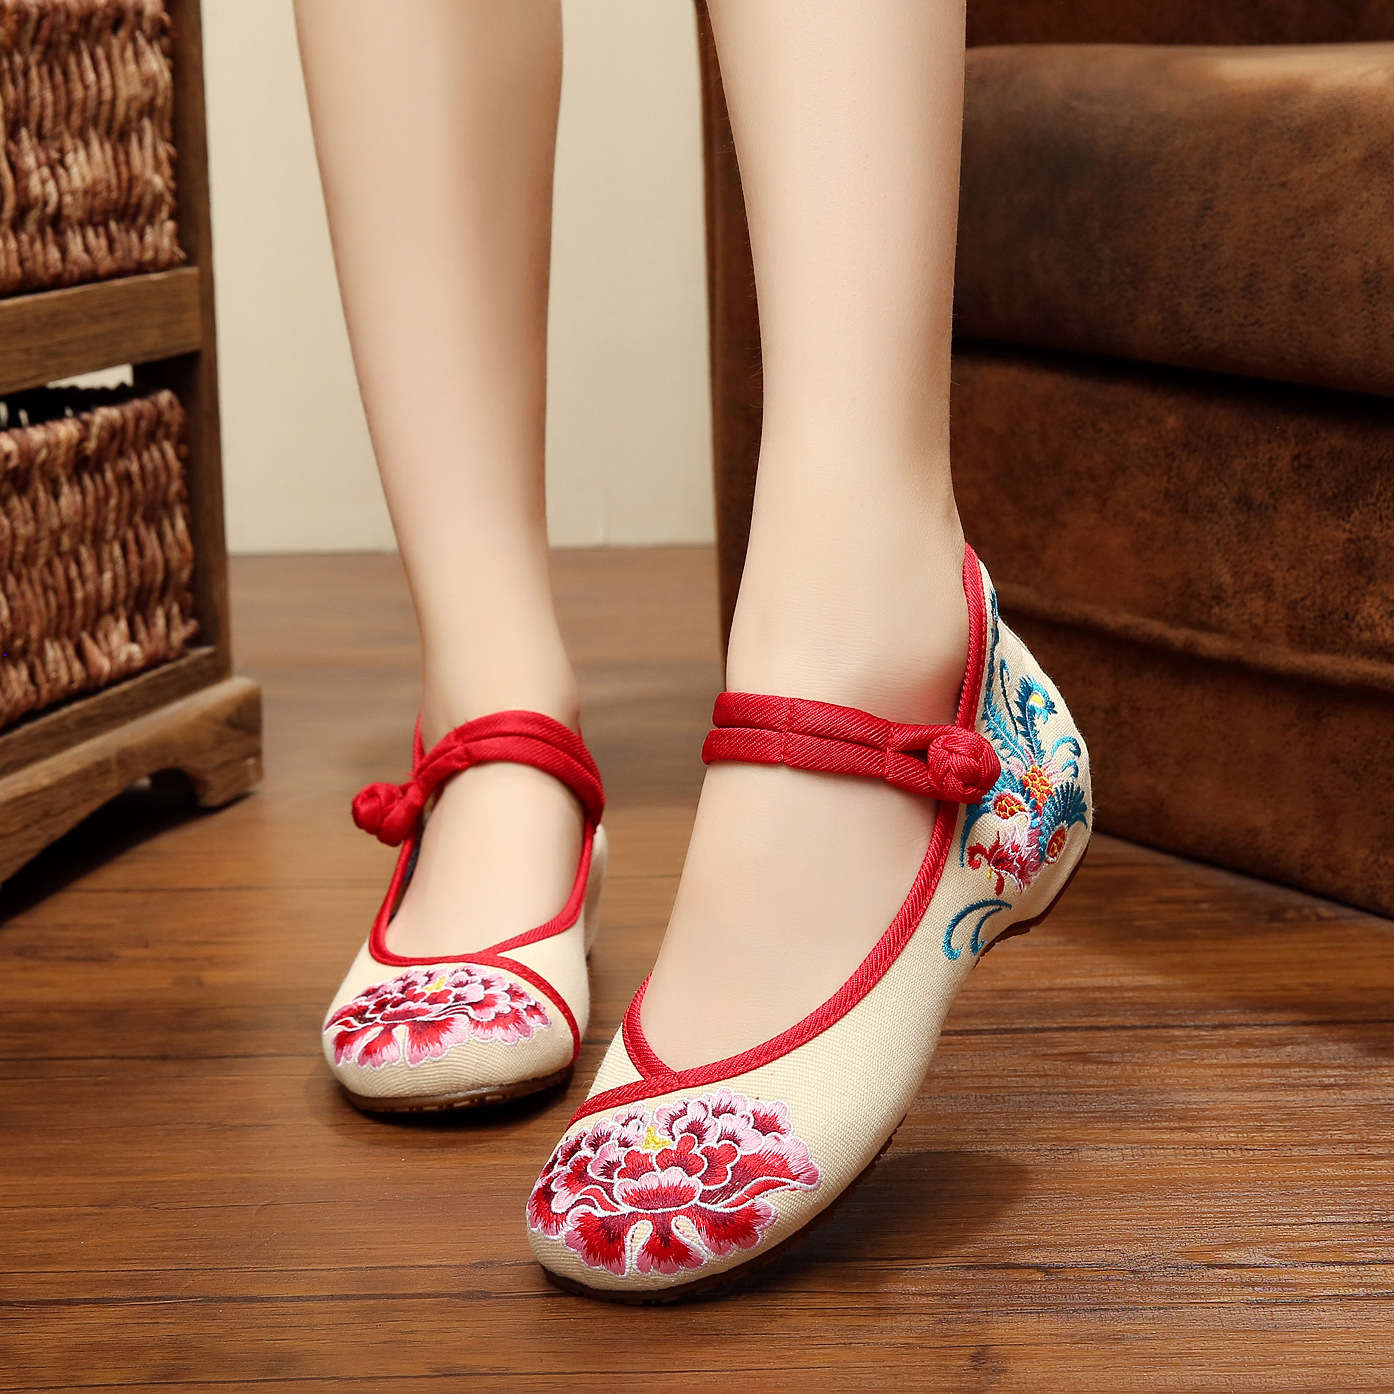 New fashion Peony rosefinch embroidered Vintage exquisite canvas Casual Simple women shoes Comfort ladies walking shoes<br><br>Aliexpress